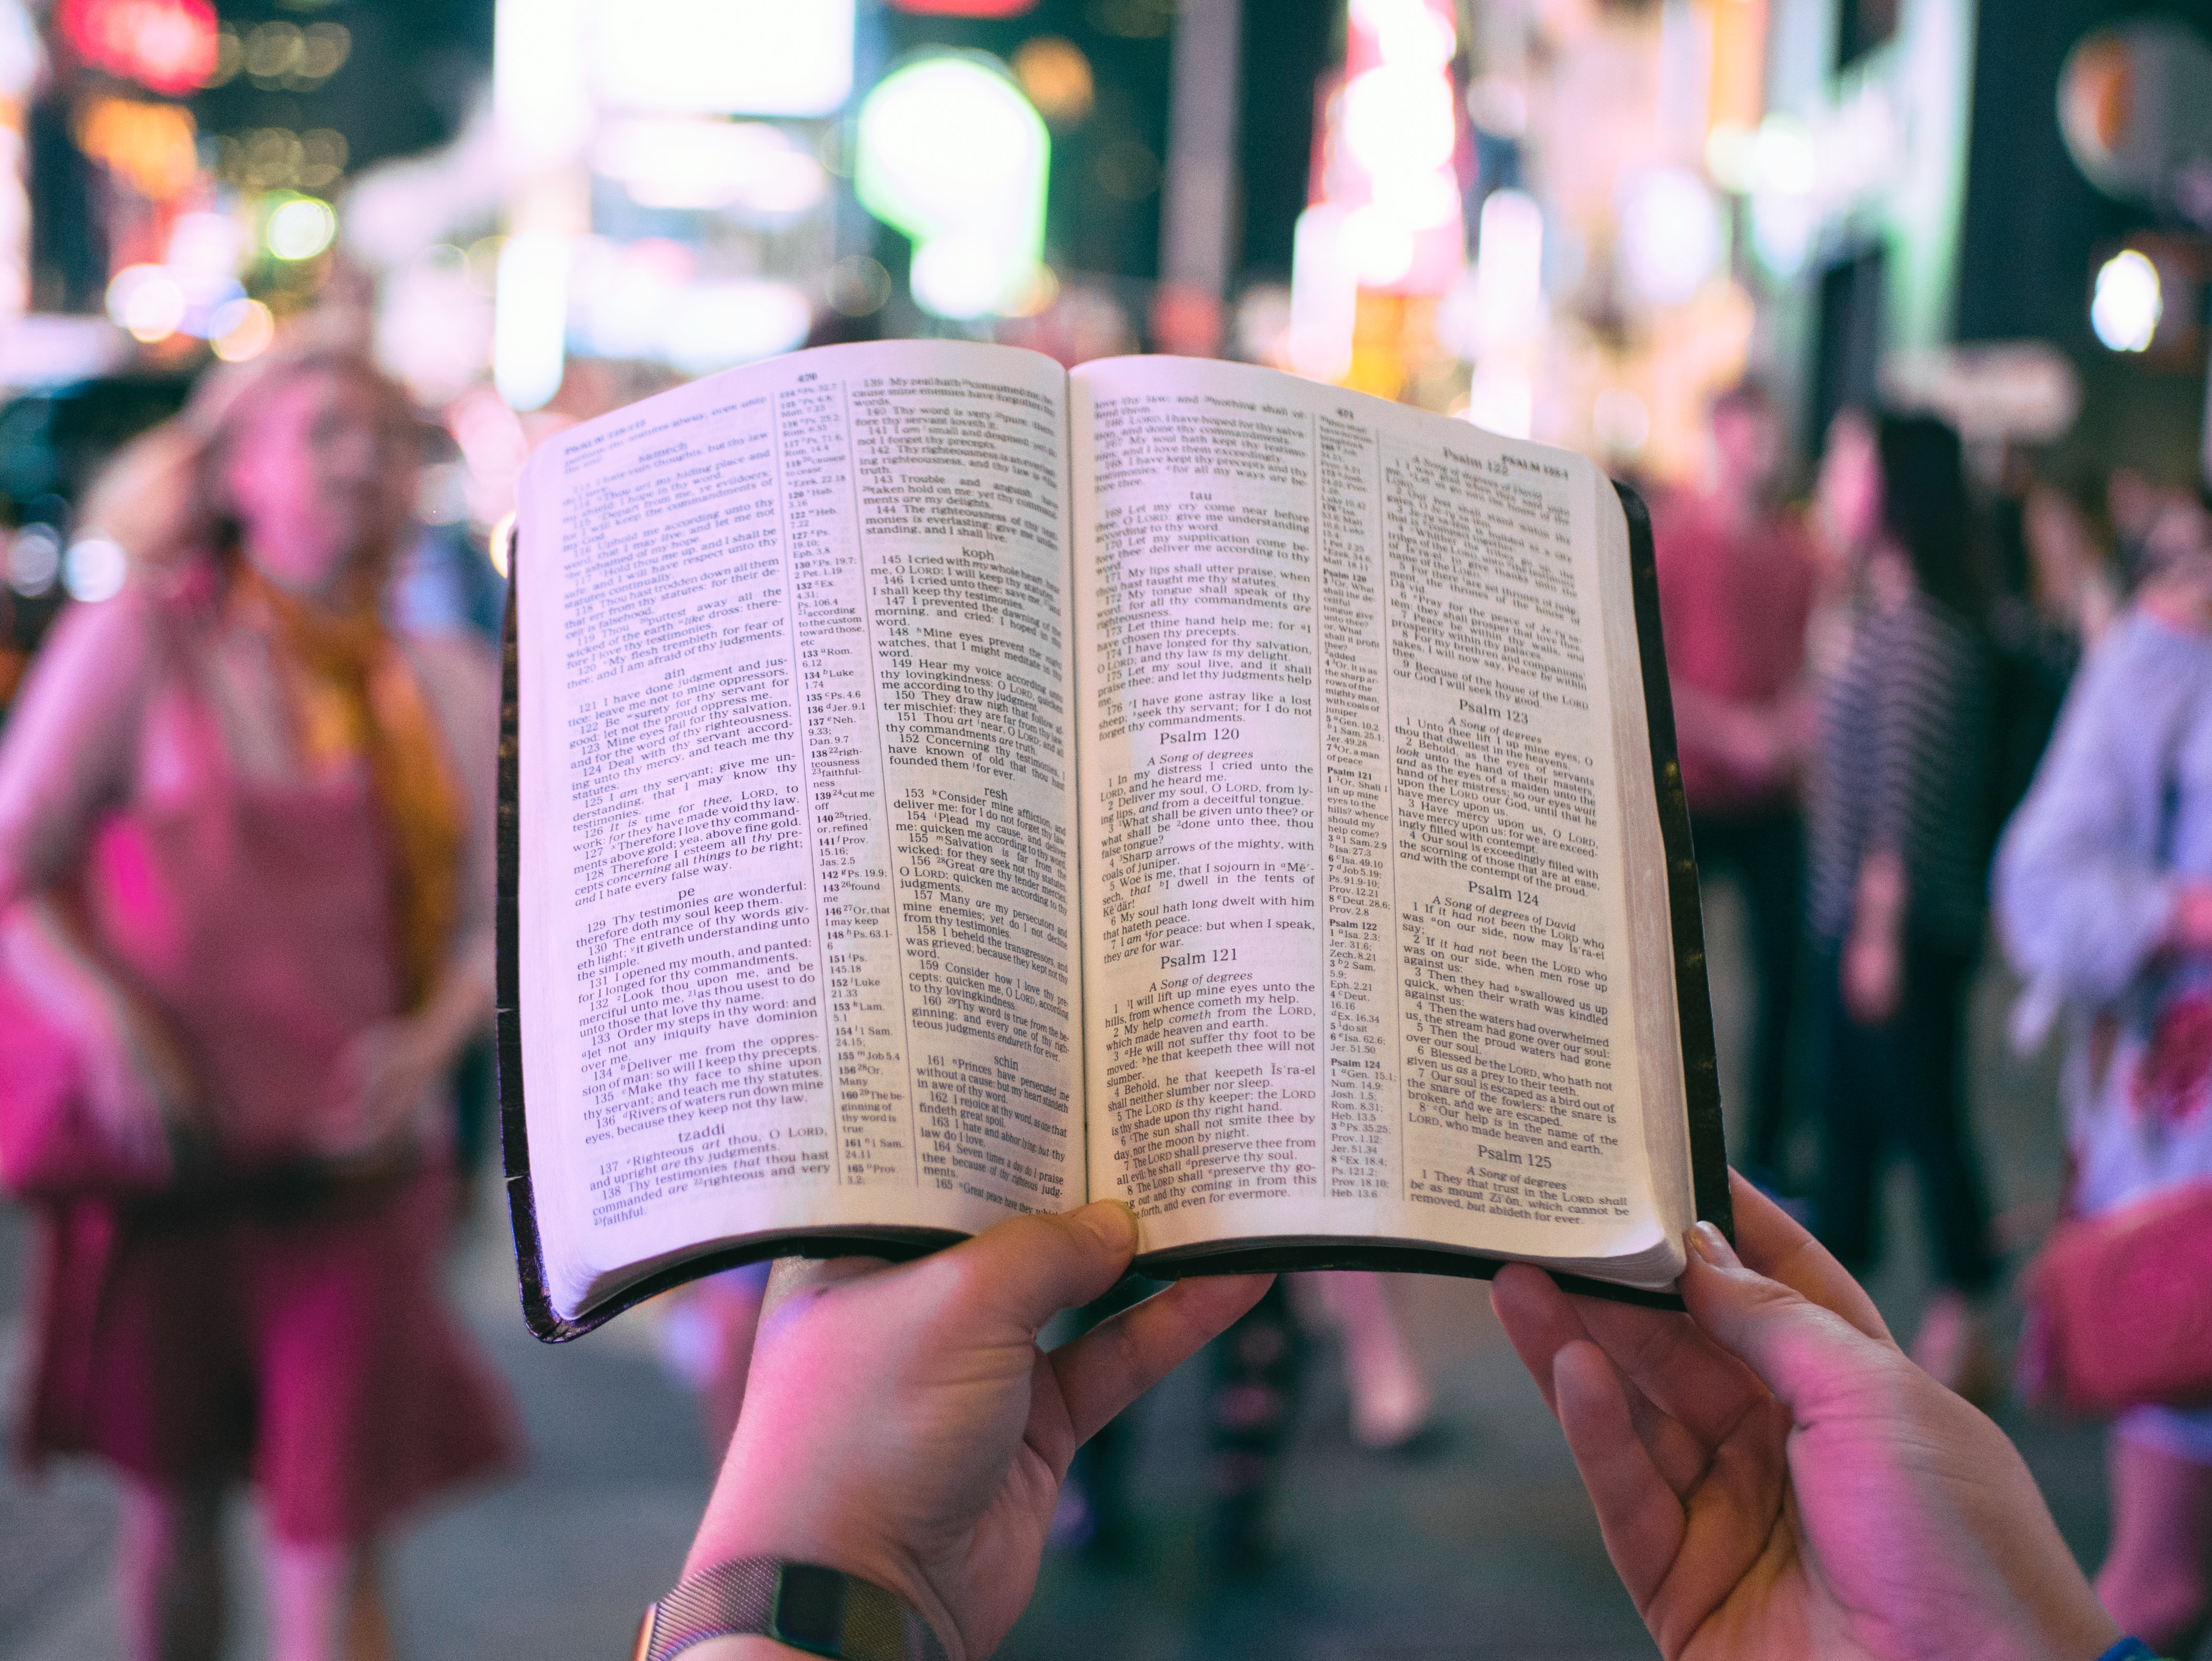 Judging God: Rereading Job for the First Time